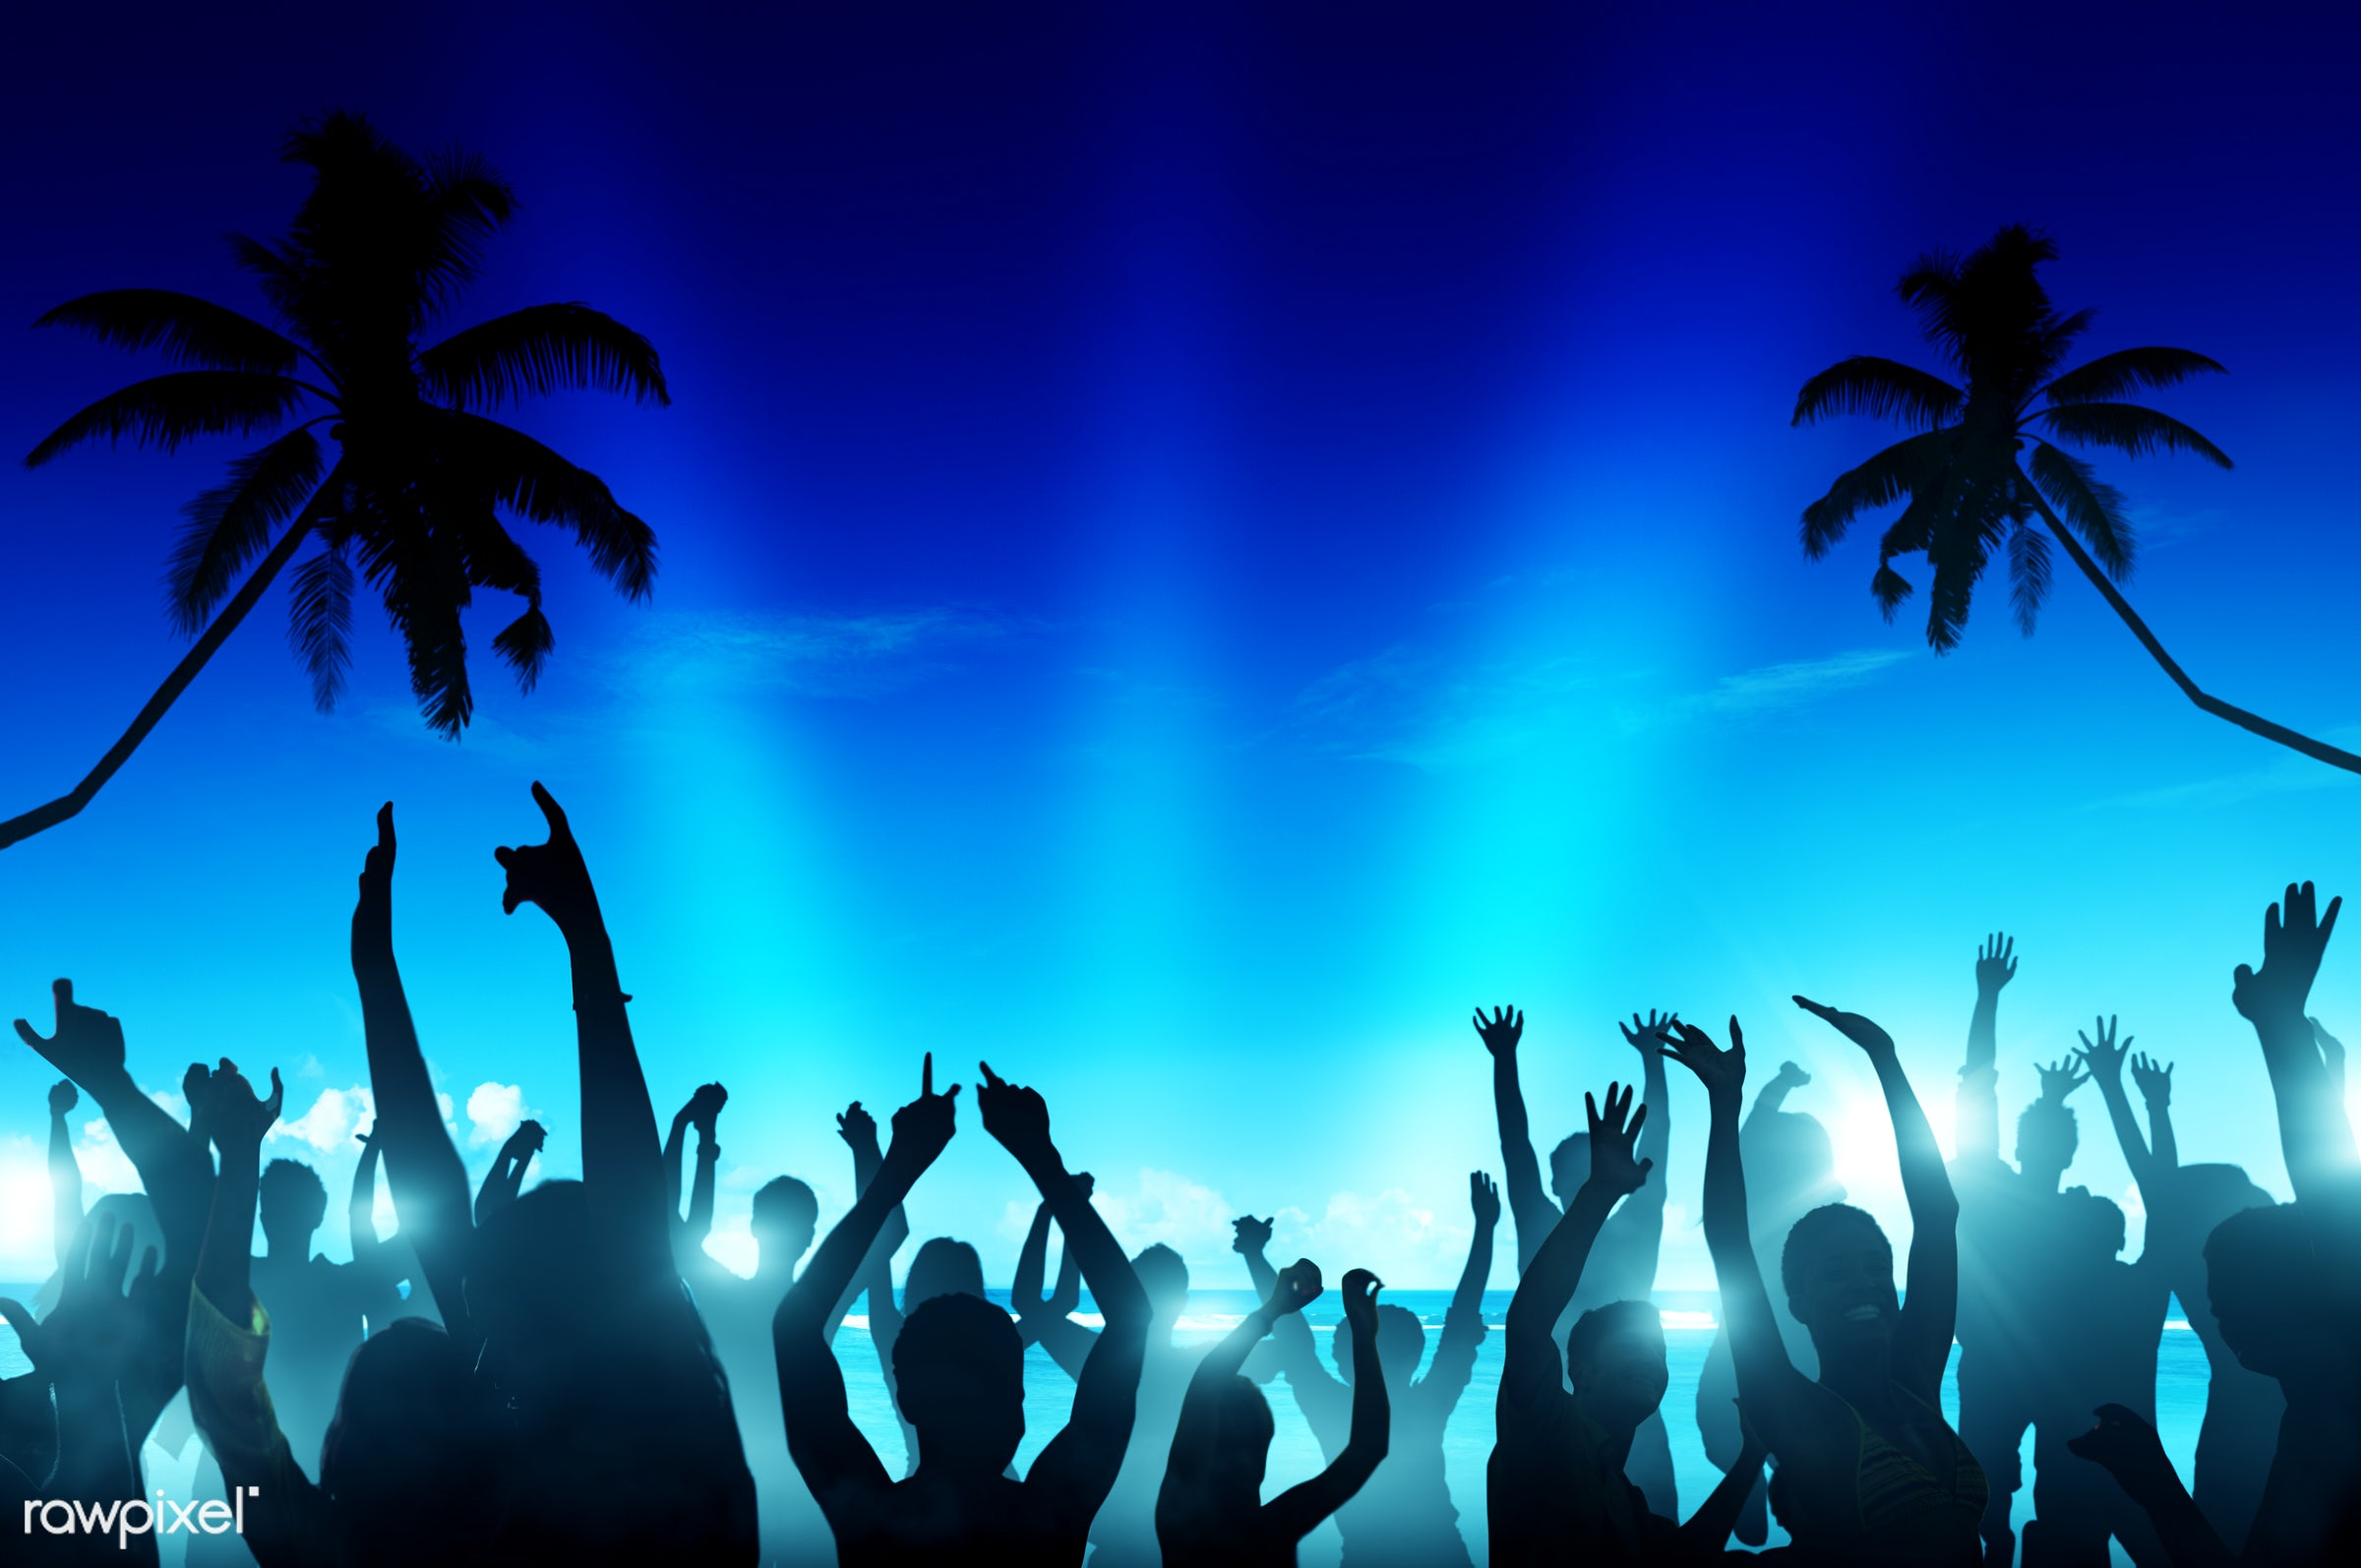 Silhouette of a summer festival - beer, nightlife, alcohol, arms outstretched, arms raised, back lit, beach, blue,...